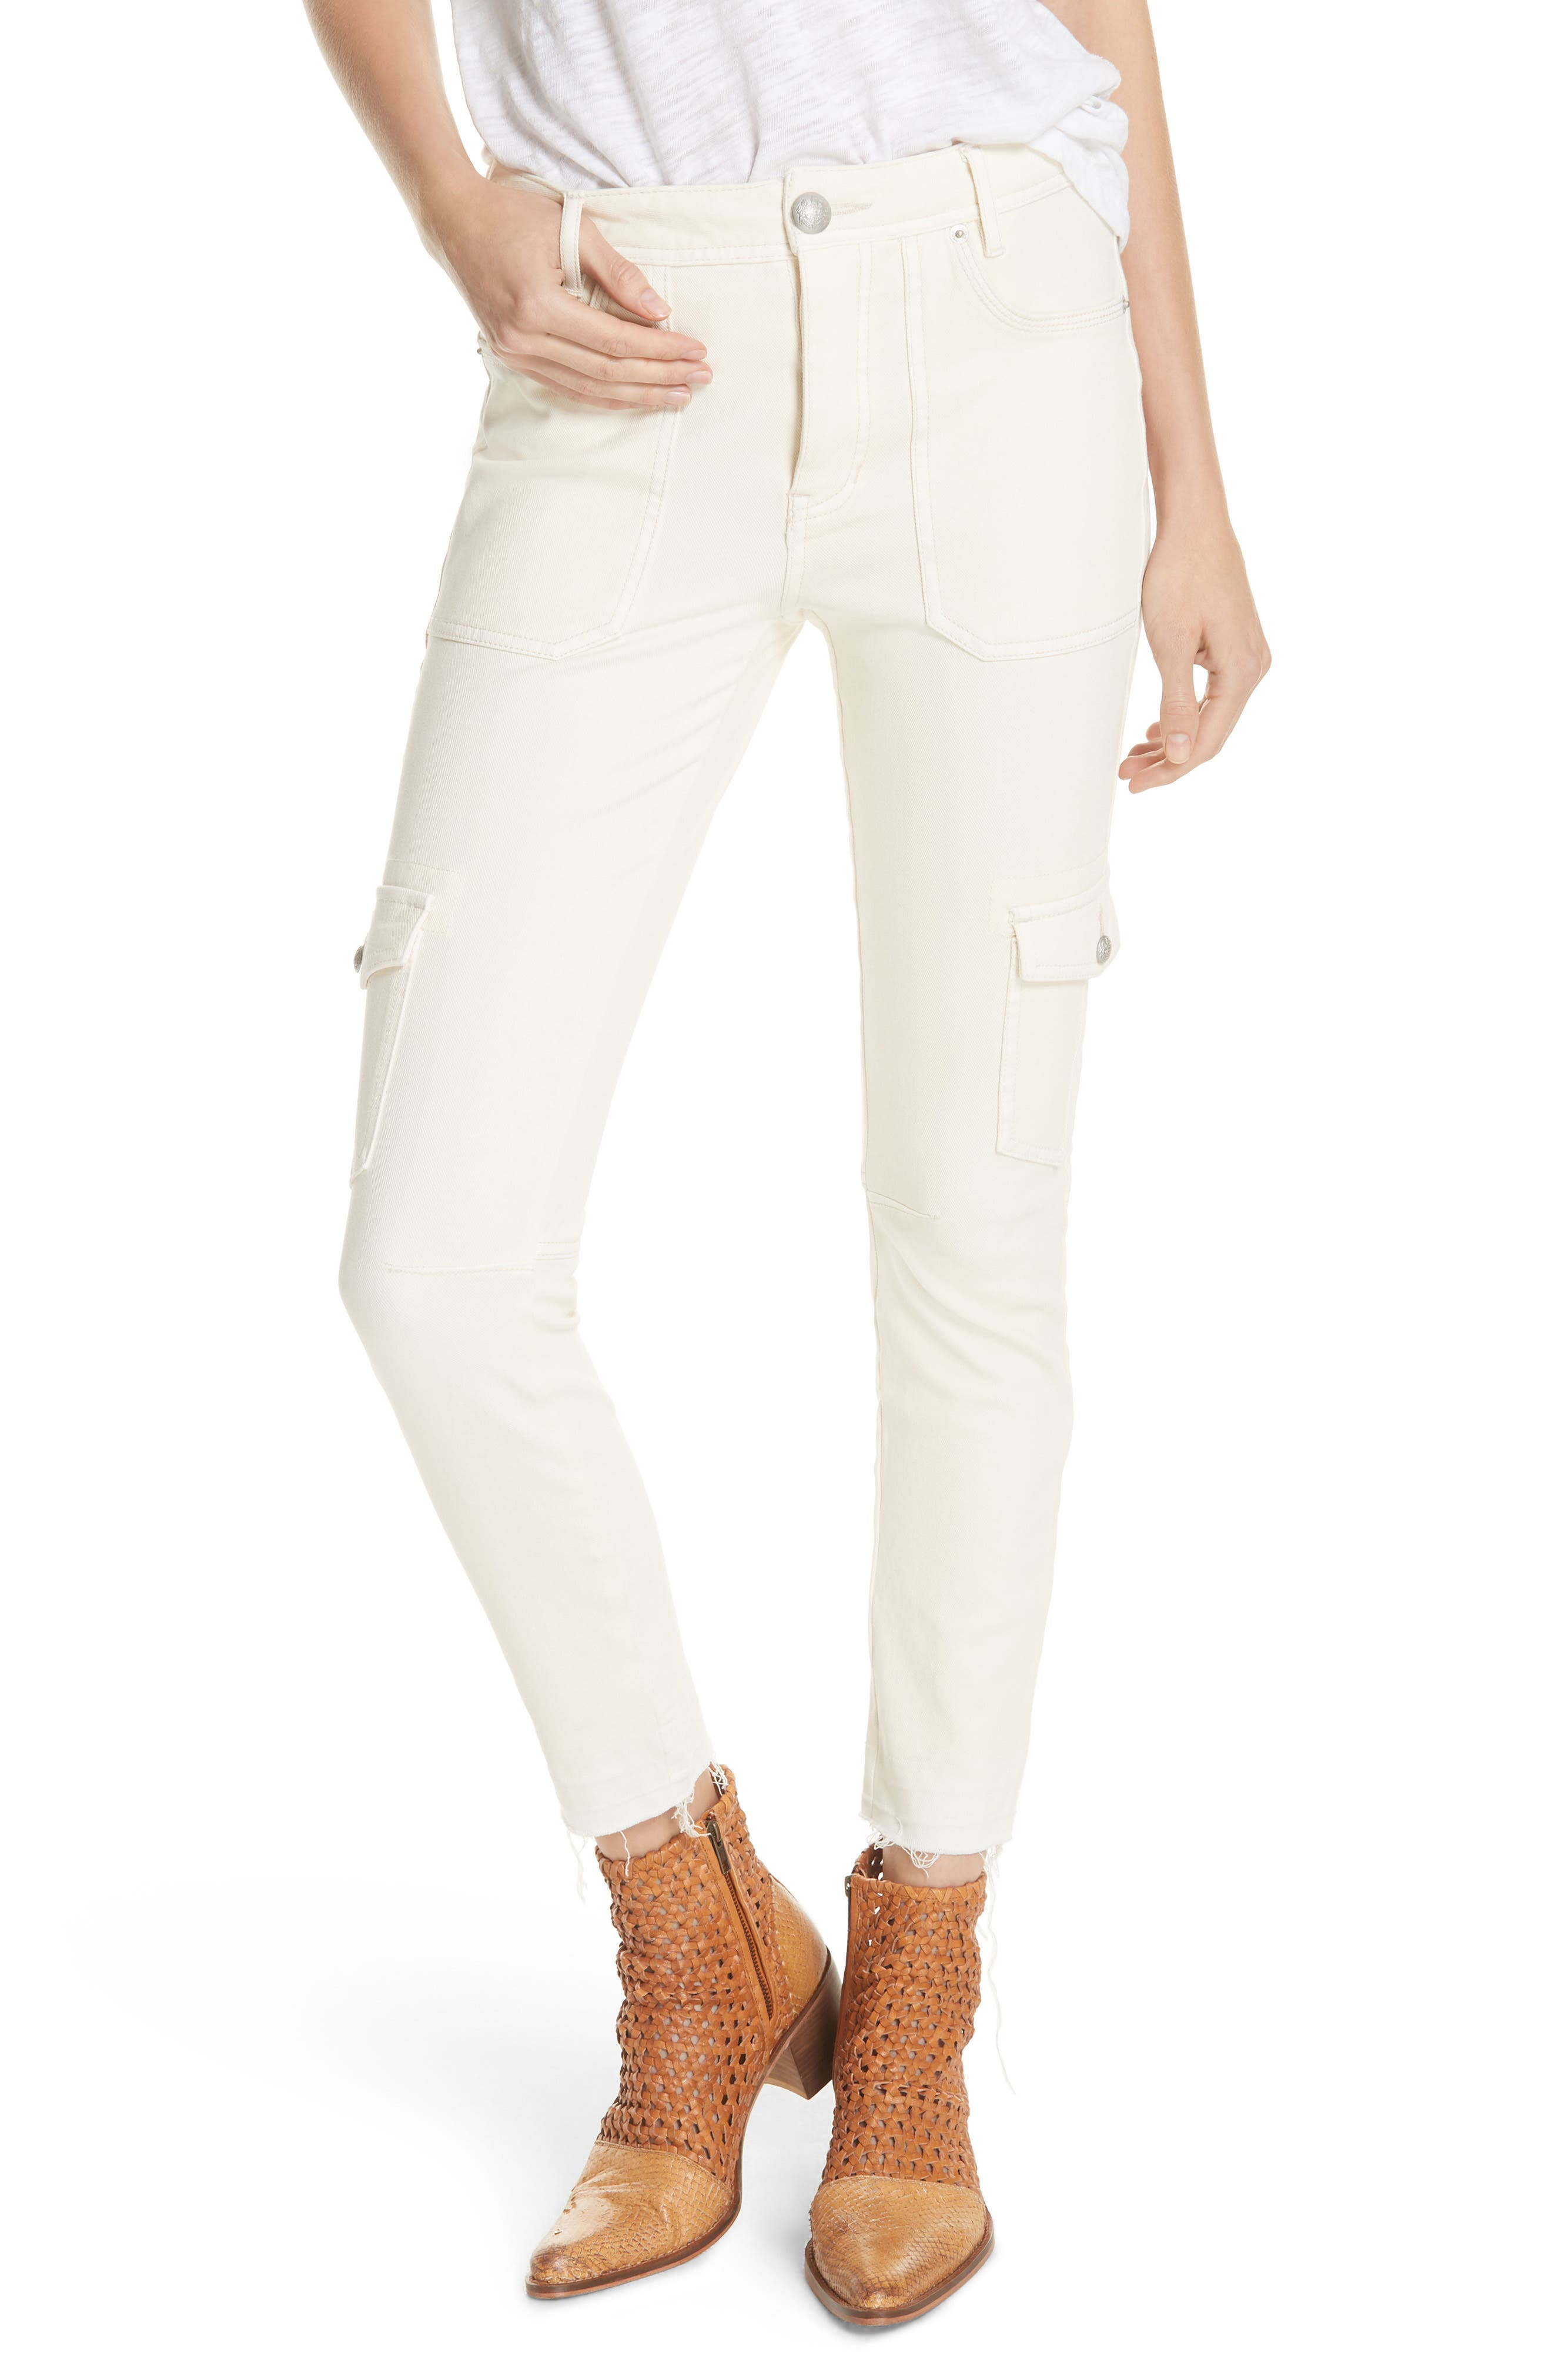 FREE PEOPLE Utility Skinny Jeans, Main, color, 252